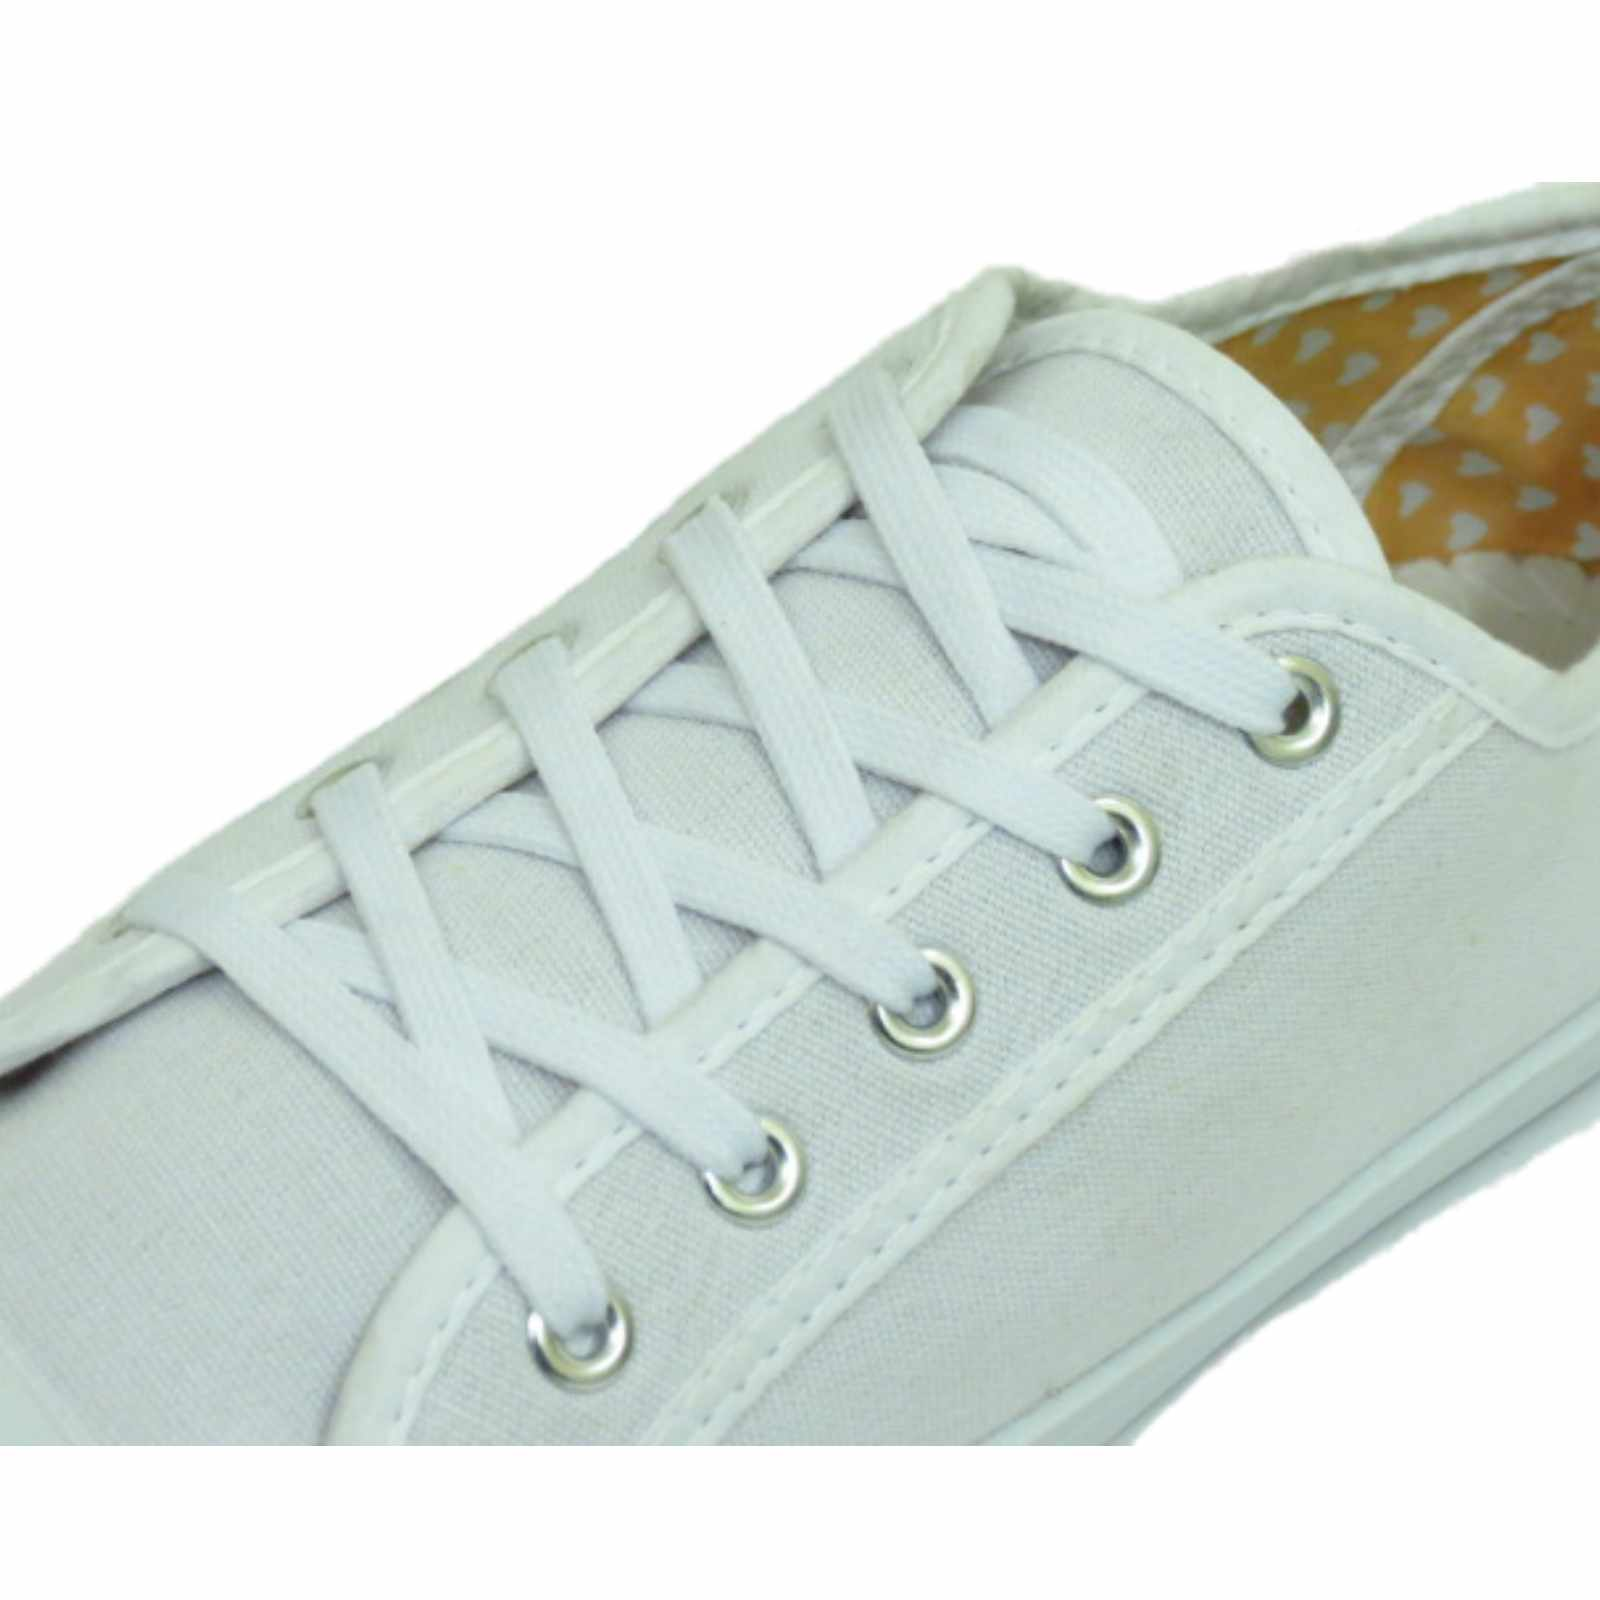 LADIES-WHITE-CANVAS-FLAT-LACE-UP-TRAINER-PLIMSOLL-PUMPS-CASUAL-SHOES-SIZES-3-9 thumbnail 8